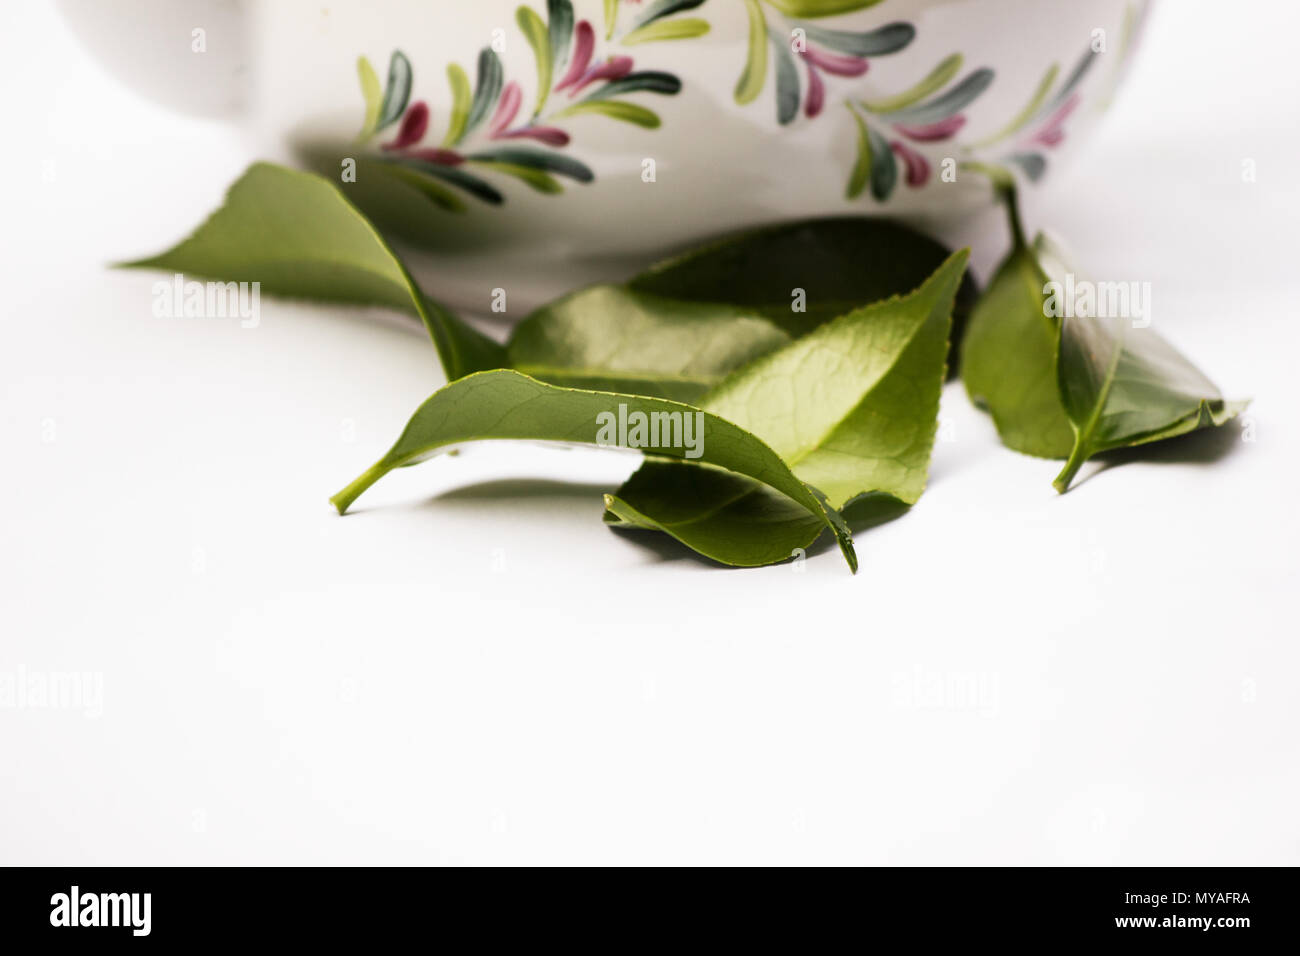 Plant tea leaves and tea pot on white background - Stock Image